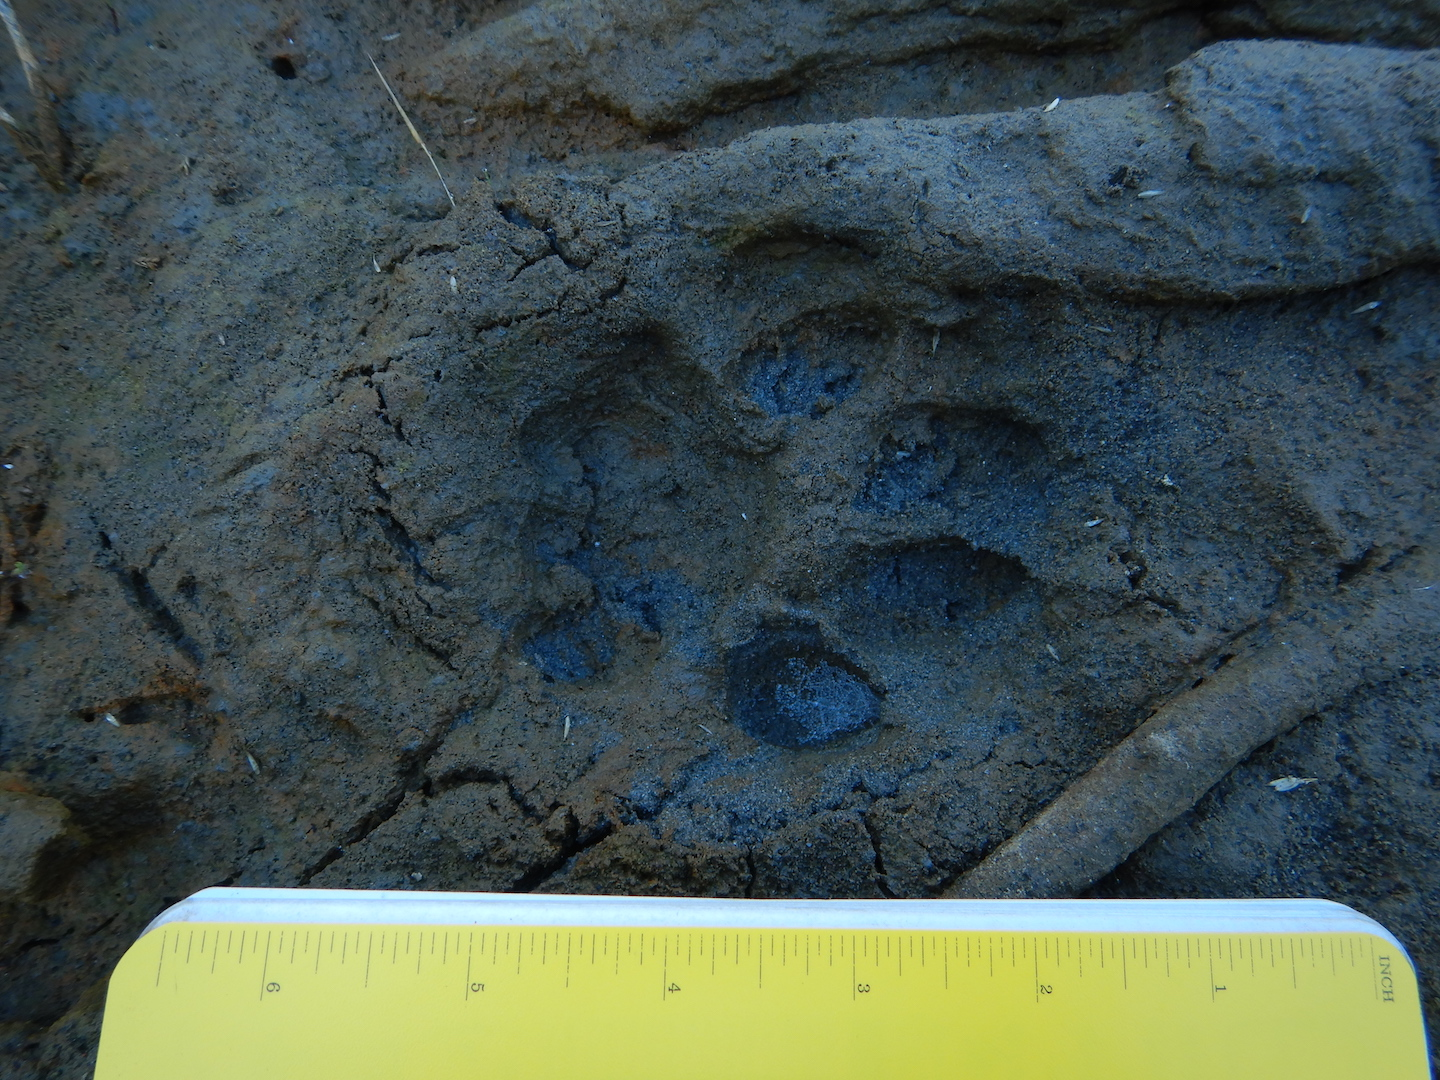 mountain lion track in mud. track point towards right. Notebook is approximately 7 inches wide.